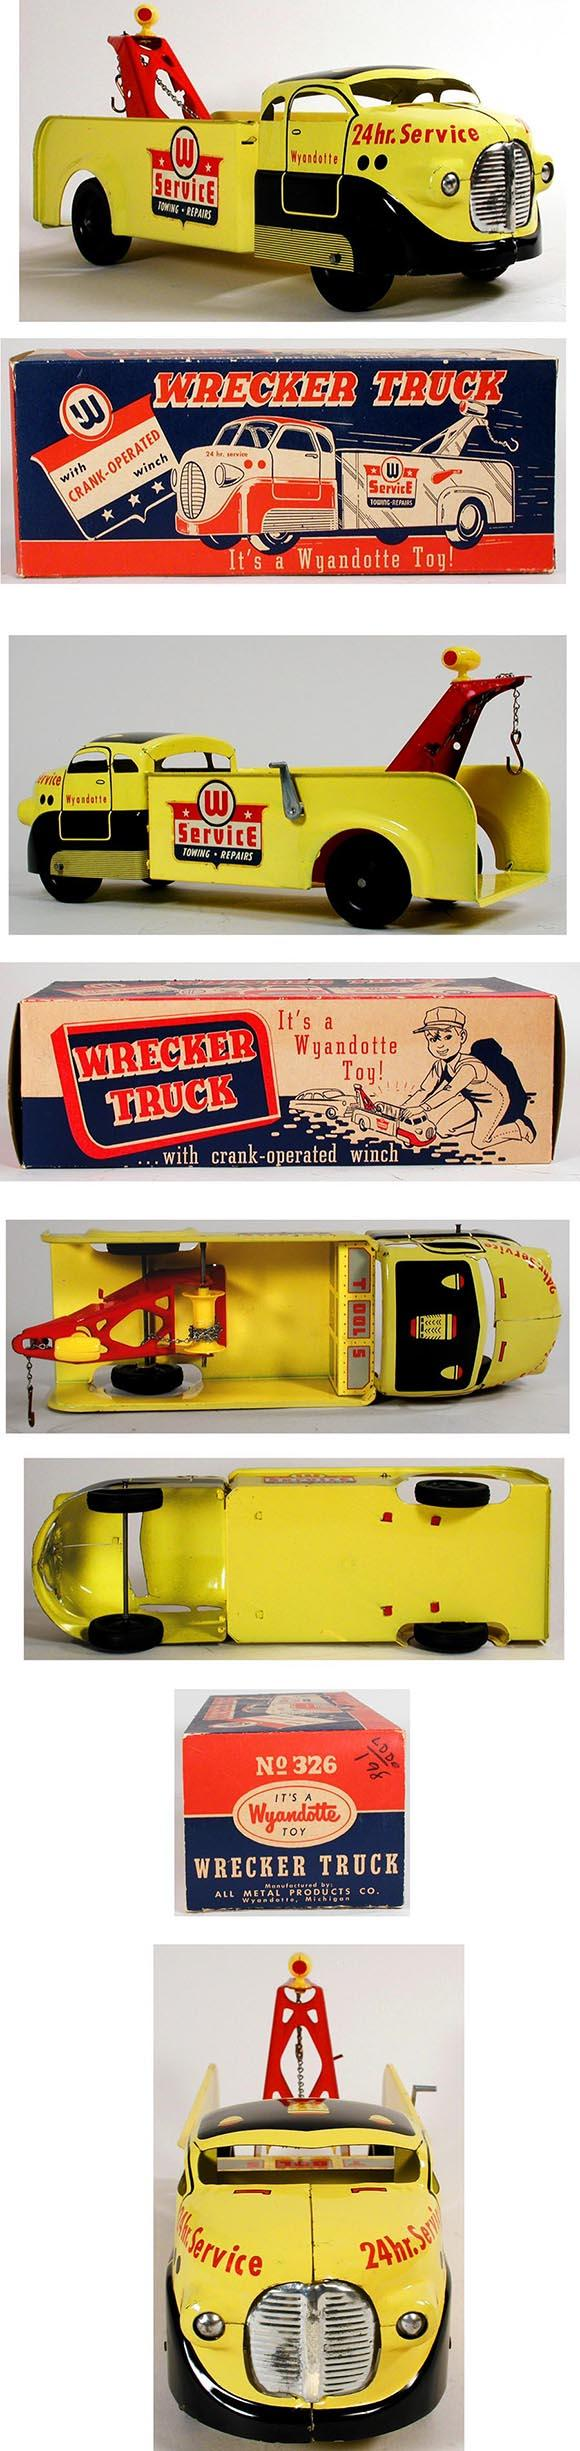 1951 Wyandotte, 24hr. Service Wrecker Truck in Original Box